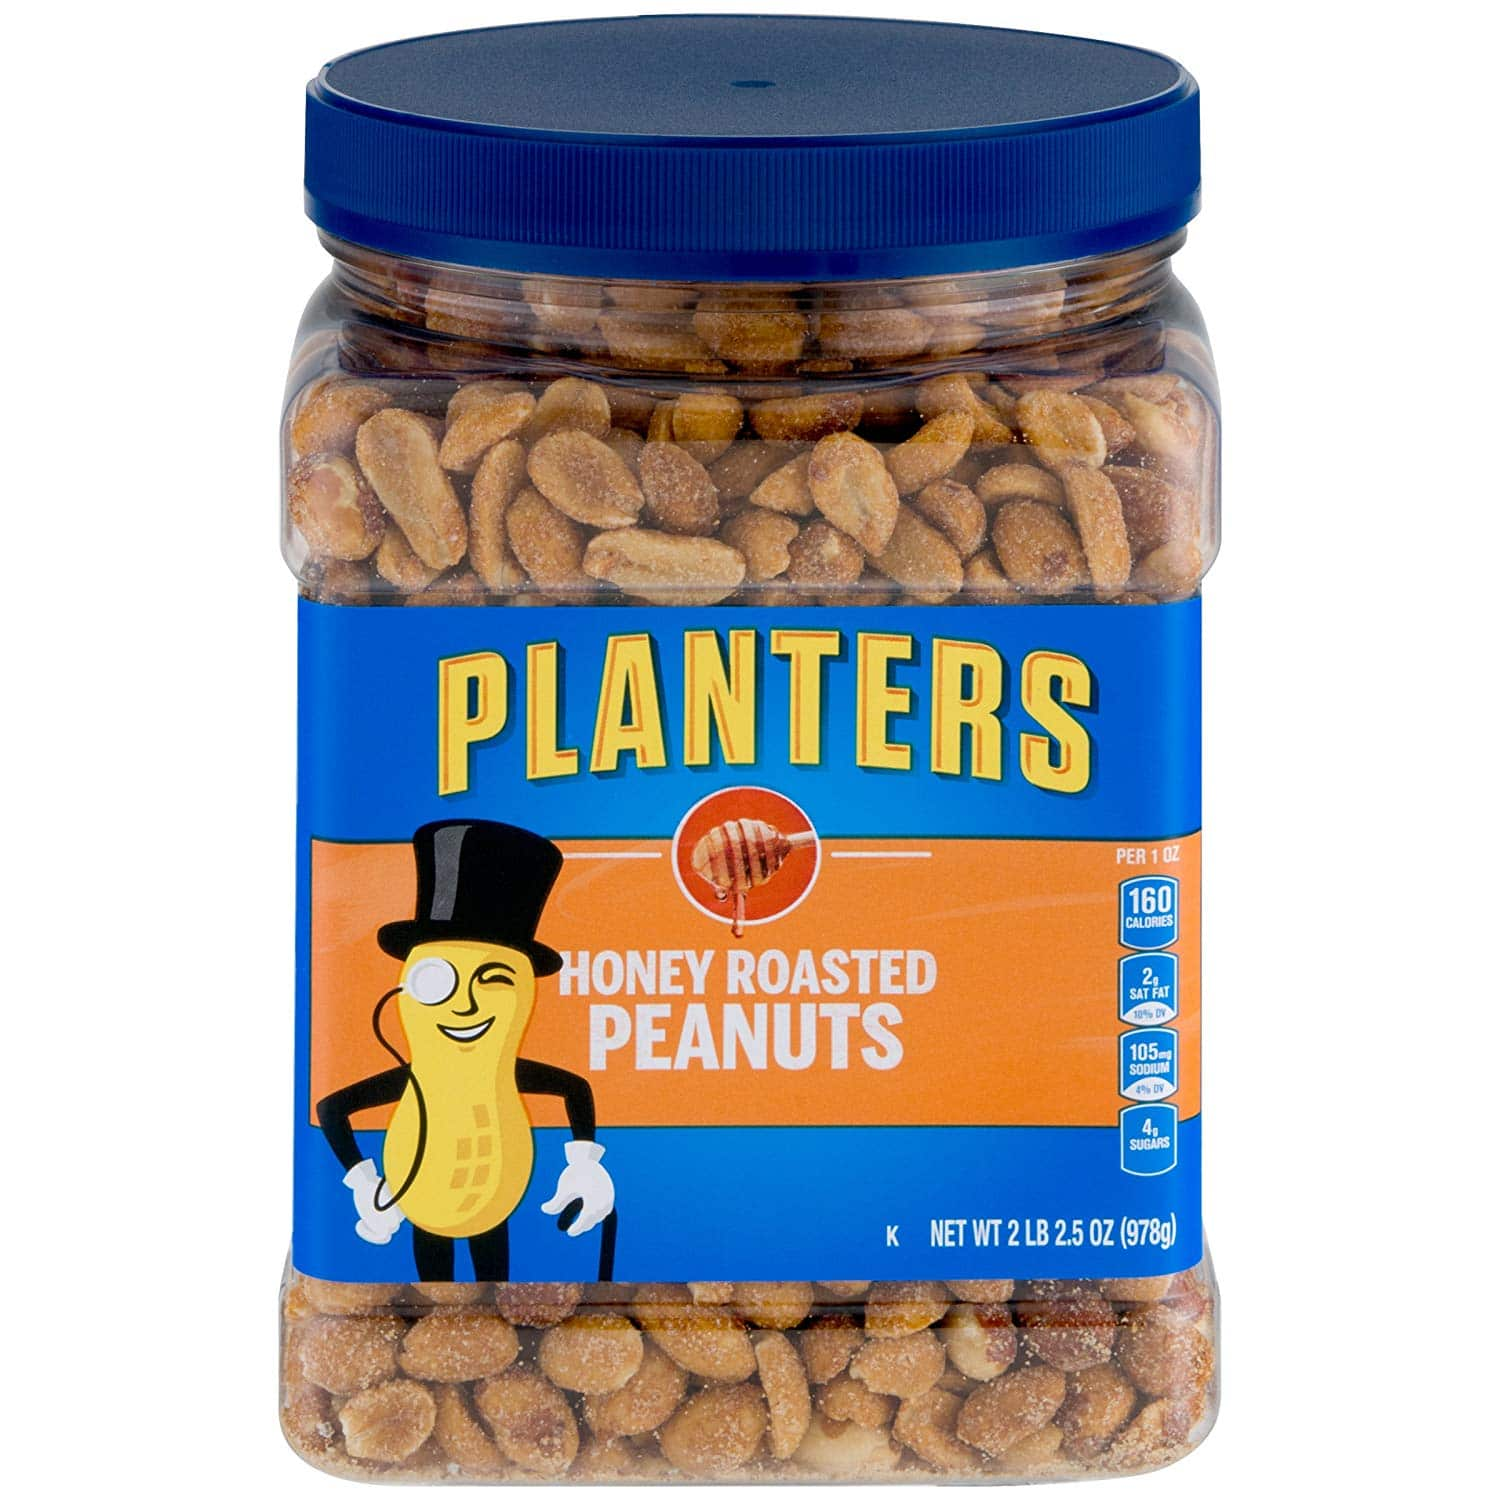 Amazon has Planters Dry Honey Roasted Peanuts, 34.5 Ounce, Pack of 2 as low as $6.65 via Subscribe & Save $7.82